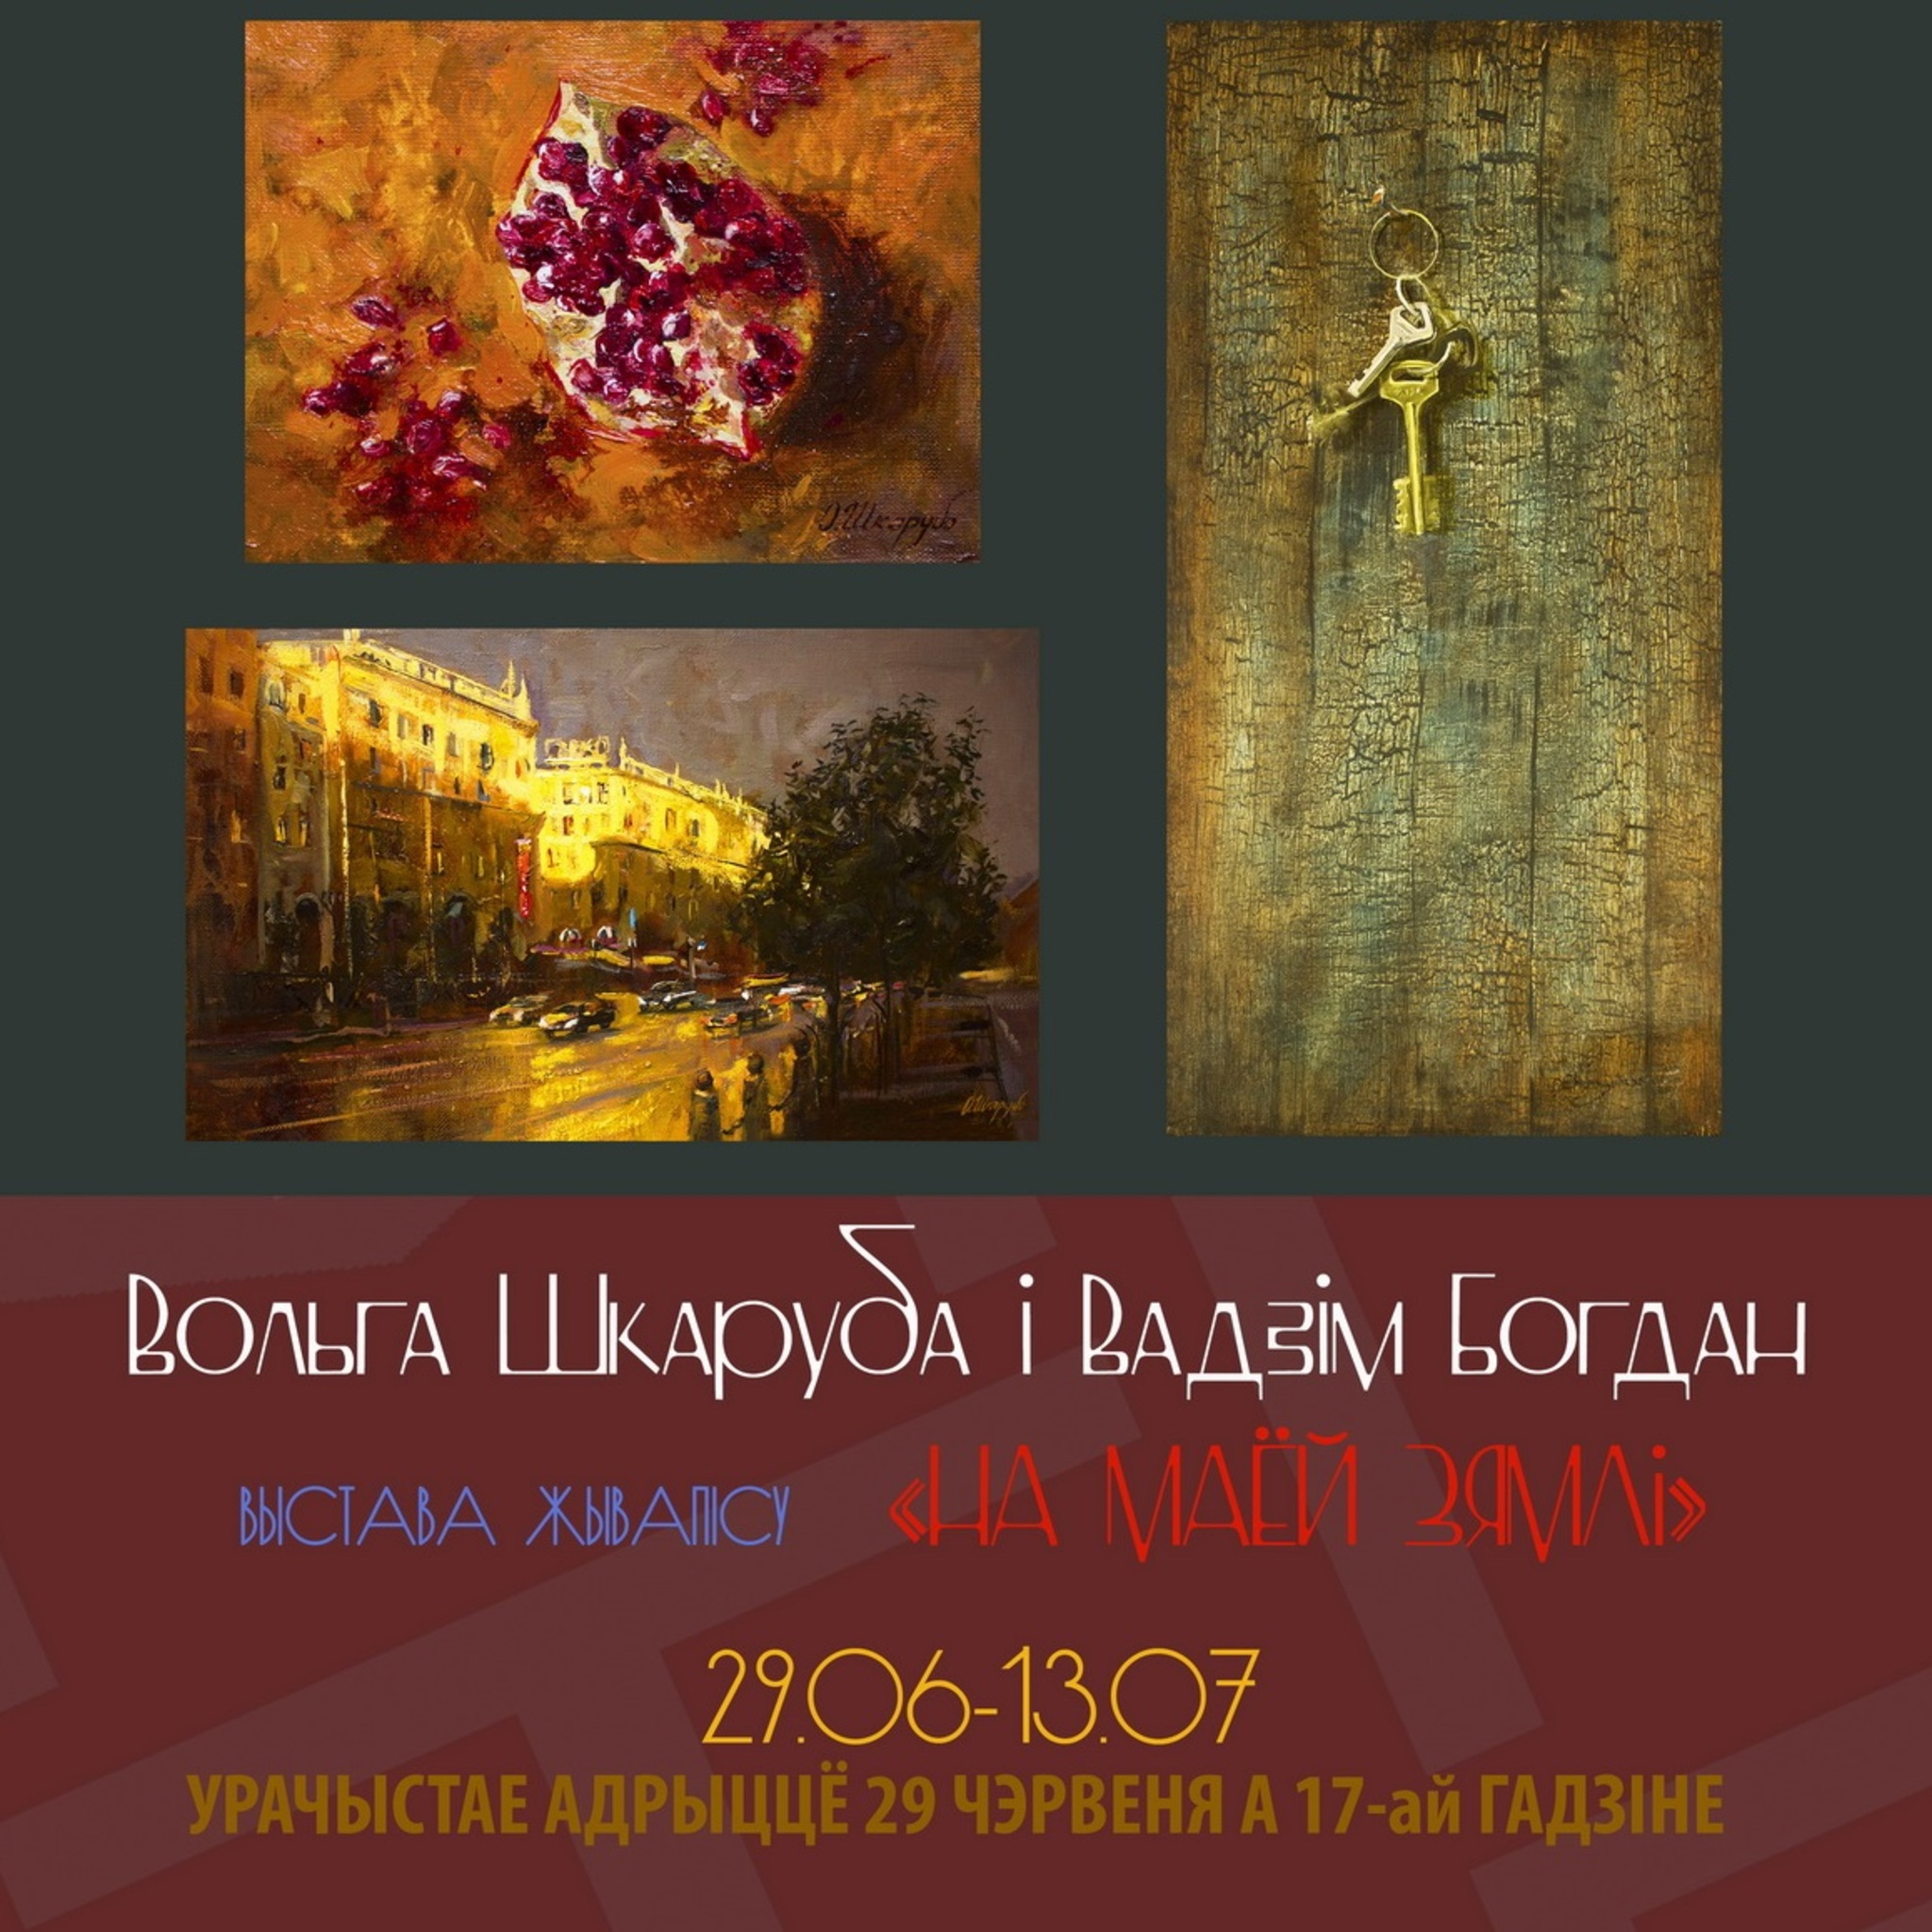 Exhibition of paintings by Olga and Vadim Bogdan Shkarubo